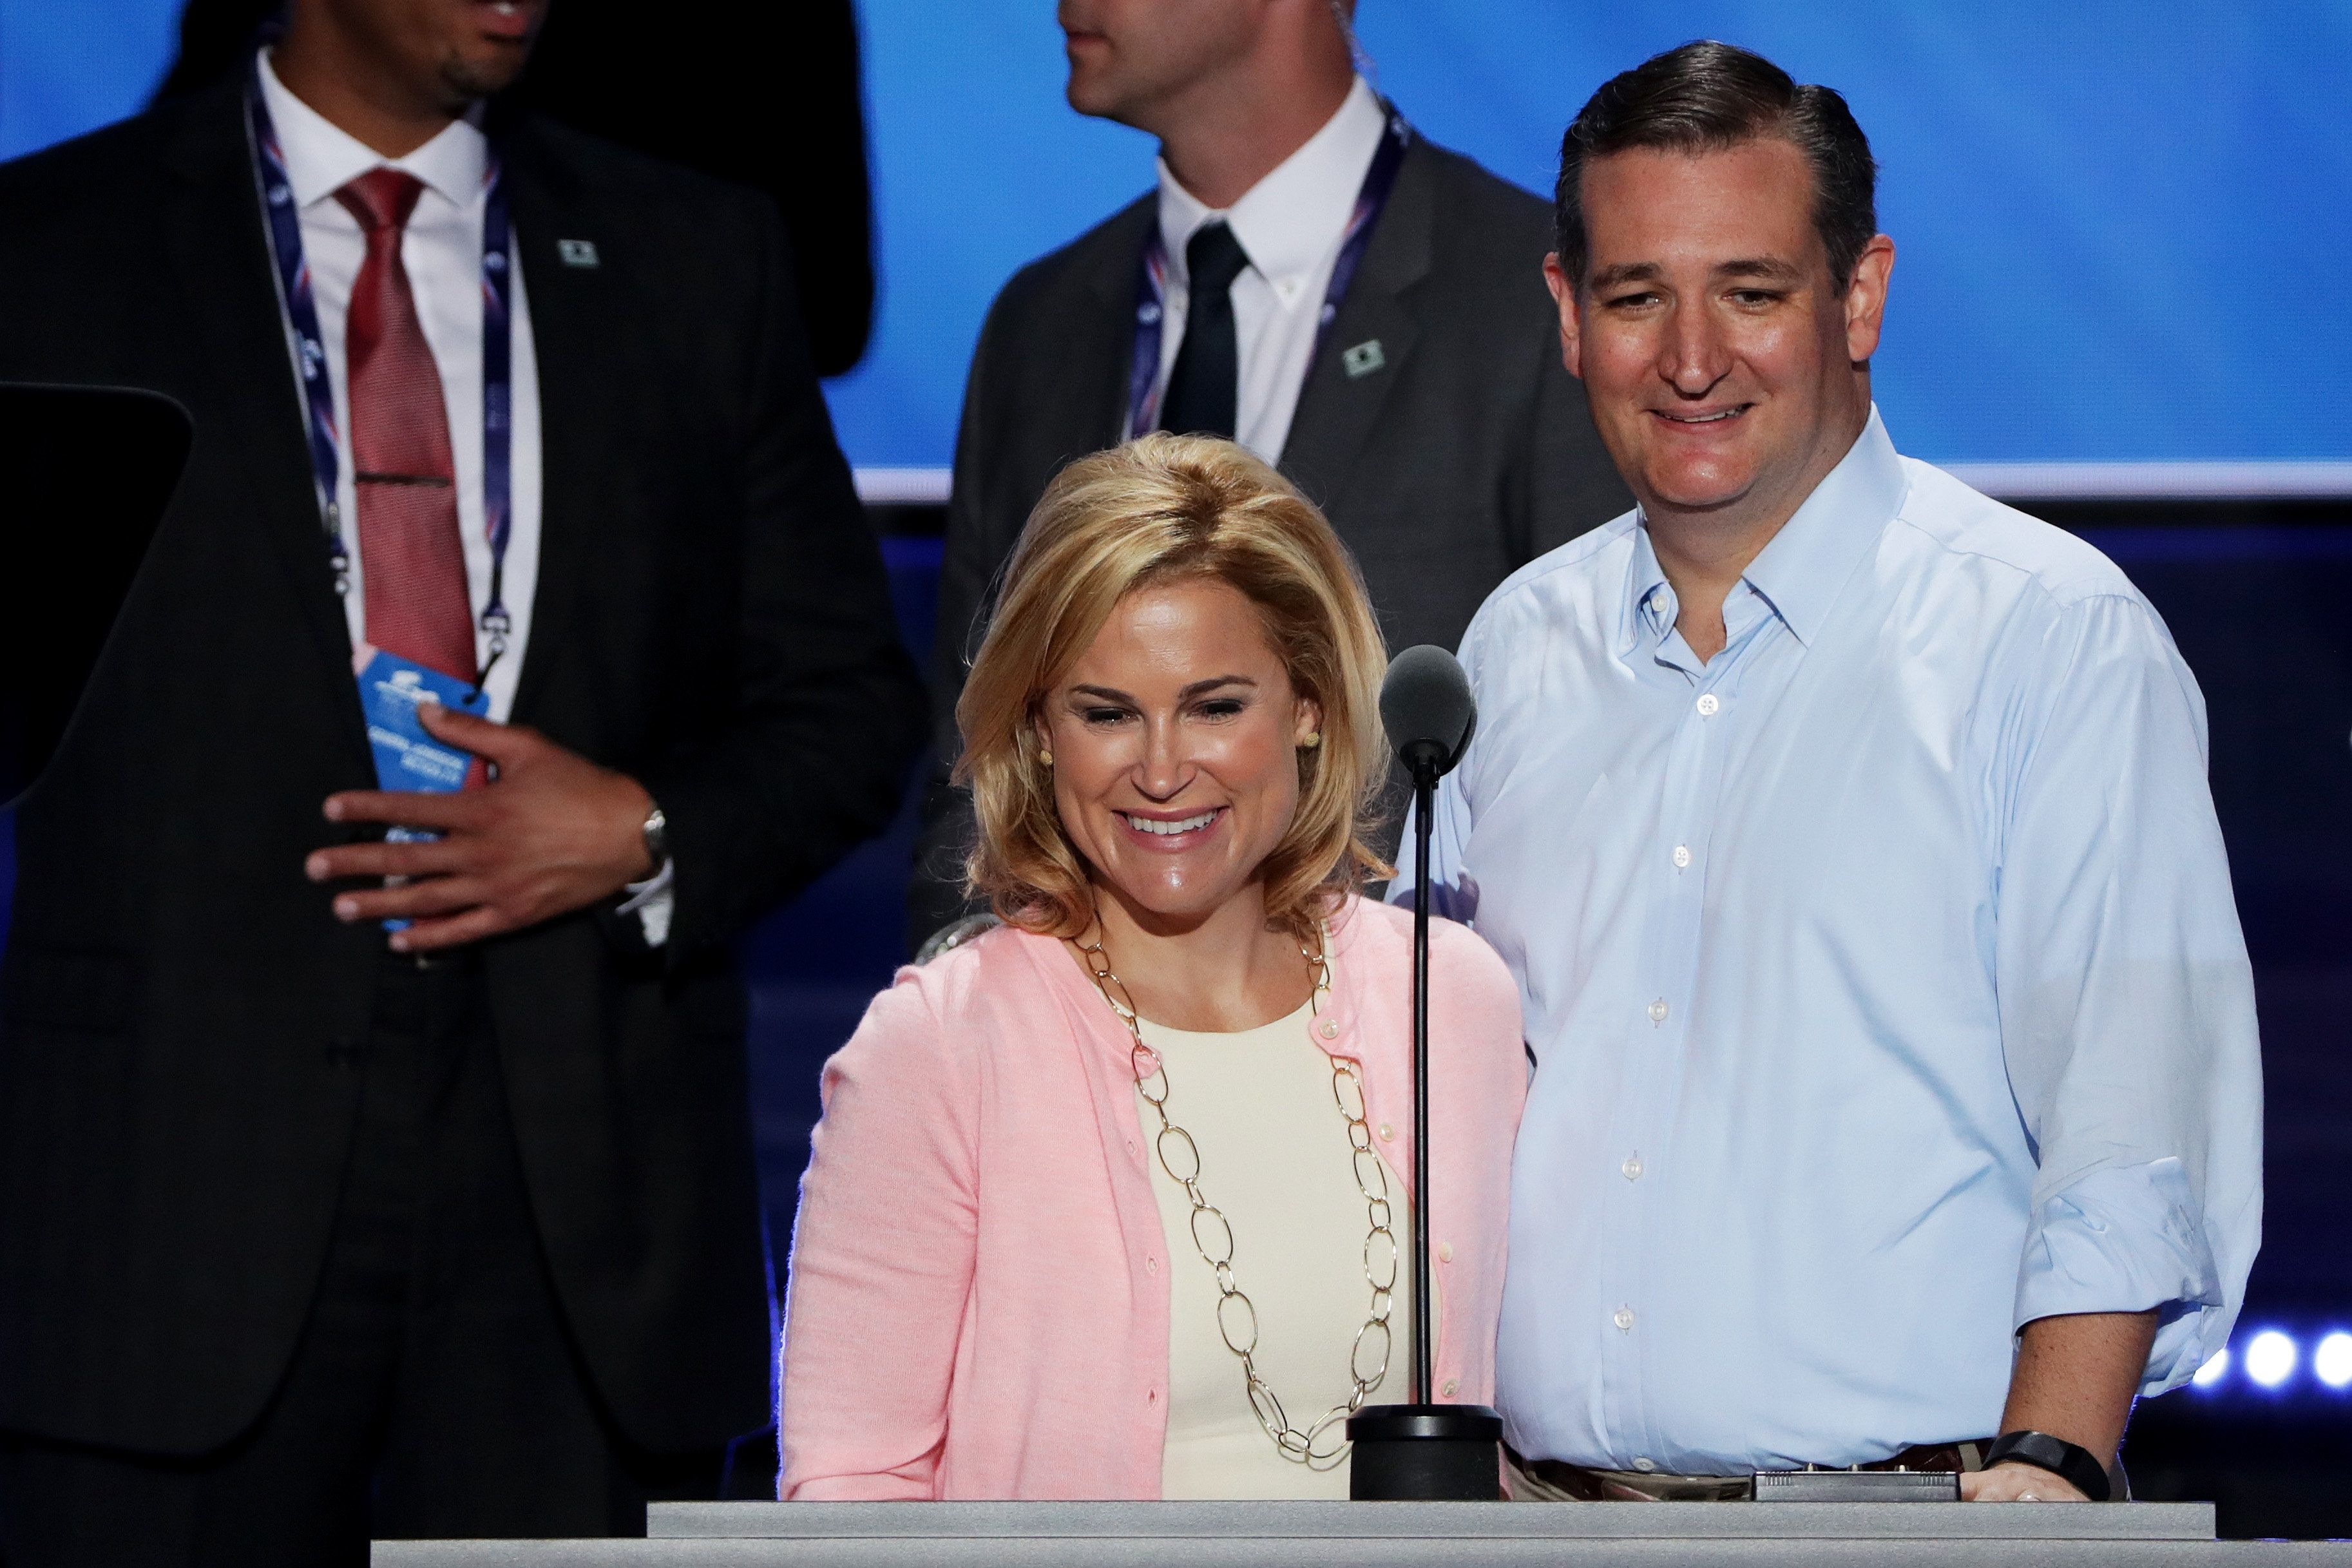 CLEVELAND, OH - JULY 20:  Sen. Ted Cruz (R-TX) (R) along with his wife Heidi Cruz (C) stand on stage prior to the start  on the third day of the Republican National Convention on July 20, 2016 at the Quicken Loans Arena in Cleveland, Ohio. Republican presidential candidate Donald Trump received the number of votes needed to secure the party's nomination. An estimated 50,000 people are expected in Cleveland, including hundreds of protesters and members of the media. The four-day Republican National Convention kicked off on July 18. (Photo by Alex Wong/Getty Images)